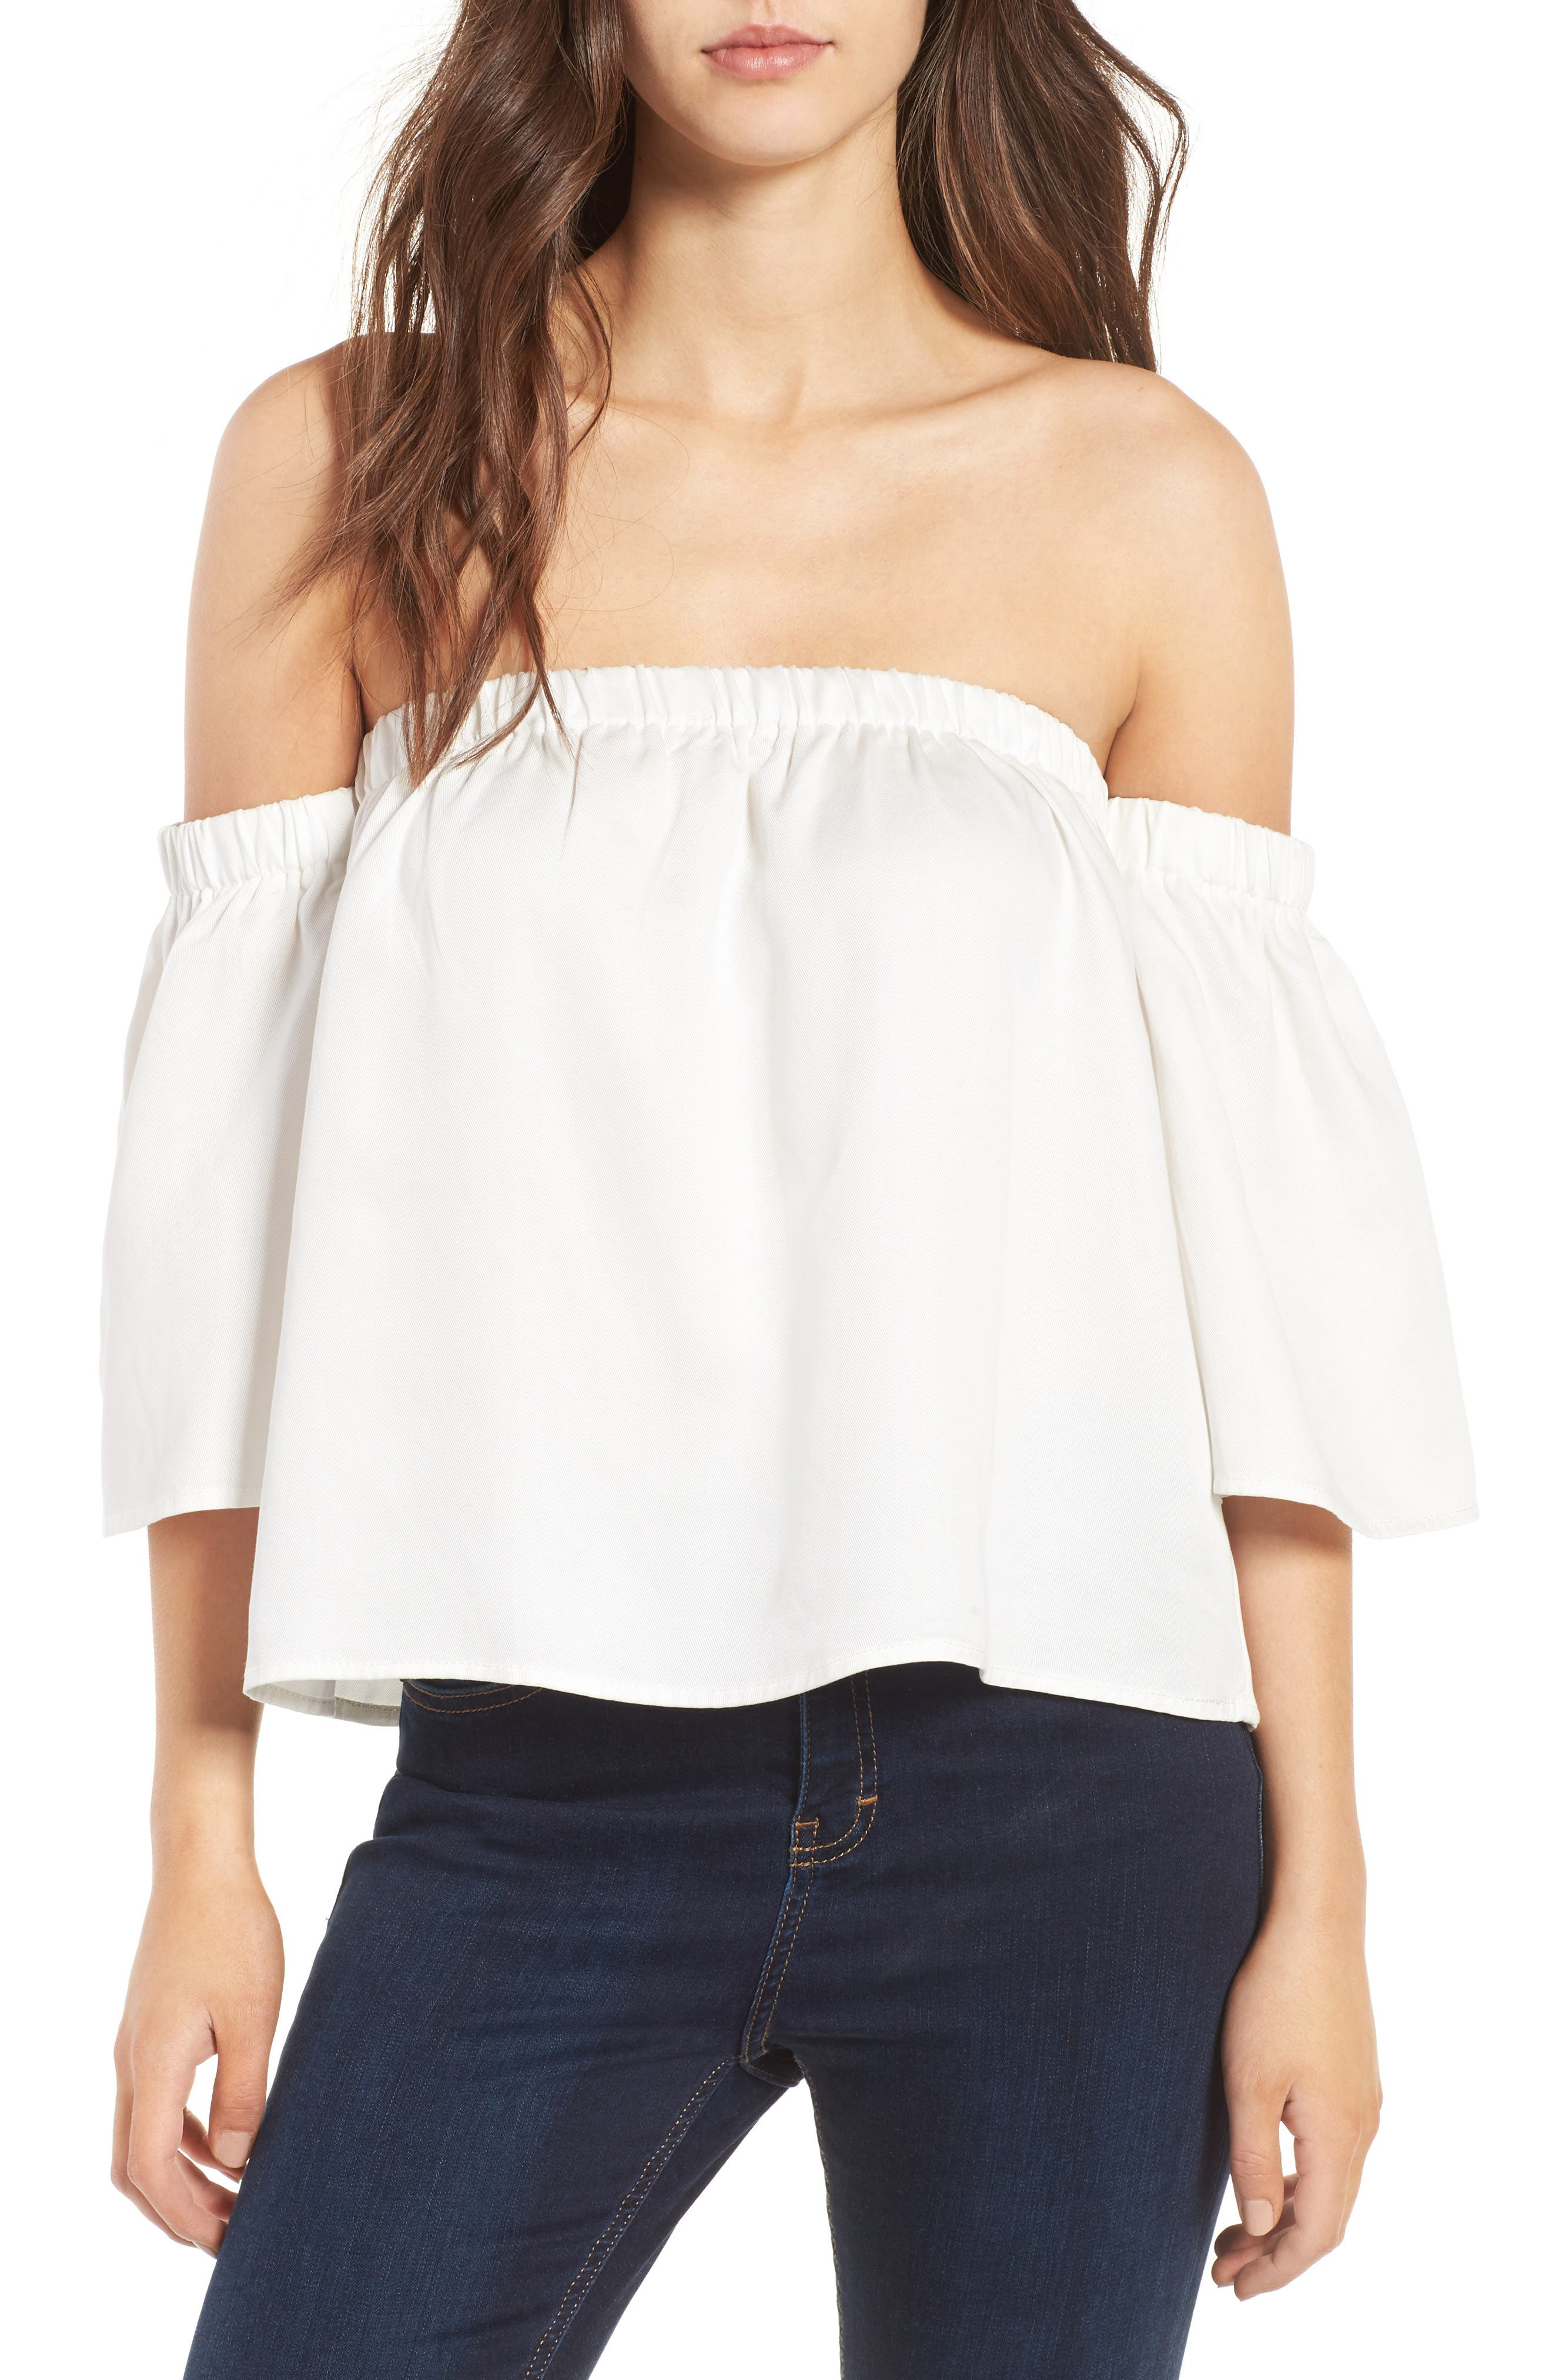 Alternate Image 1 Selected - Love, Fire Off the Shoulder Top